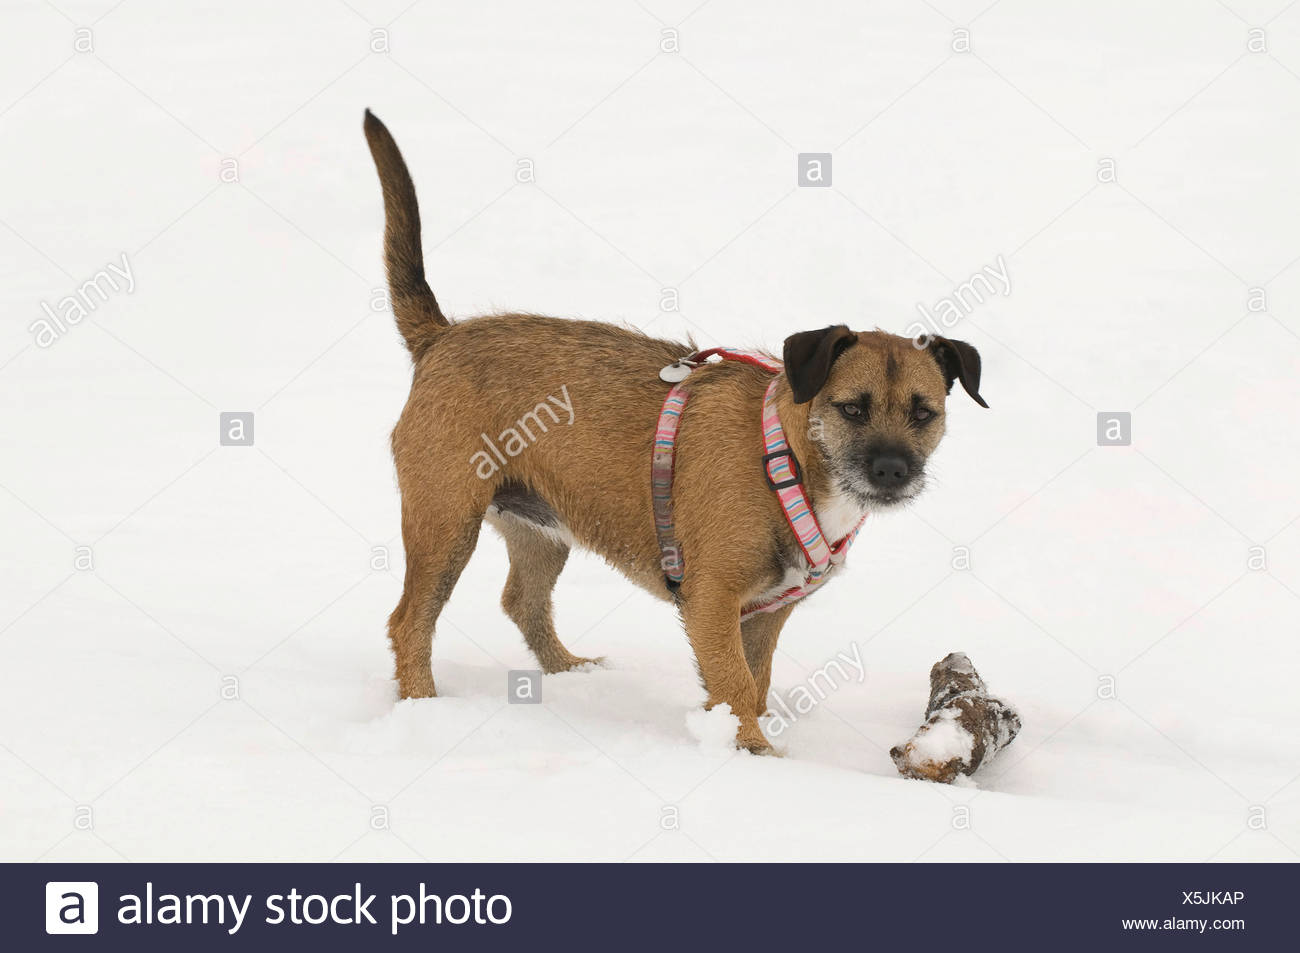 Terrier crossbreed with a branch in the snow, direct view - Stock Image